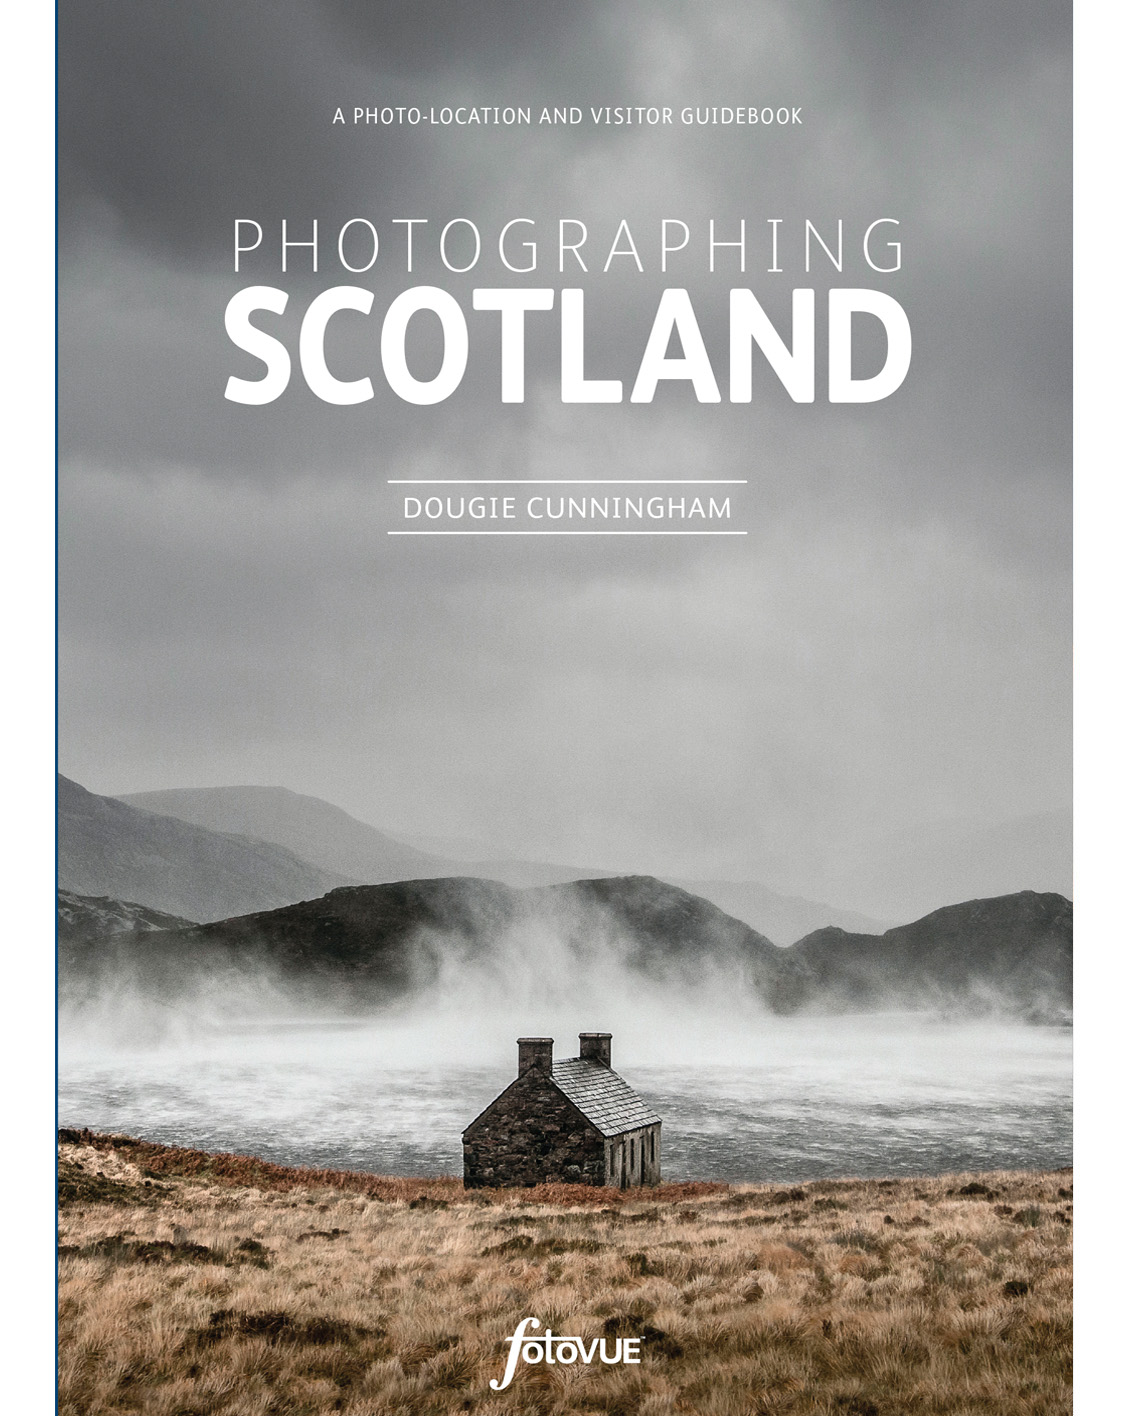 Photography Book Cover Fee ~ Photographing scotland fotovue